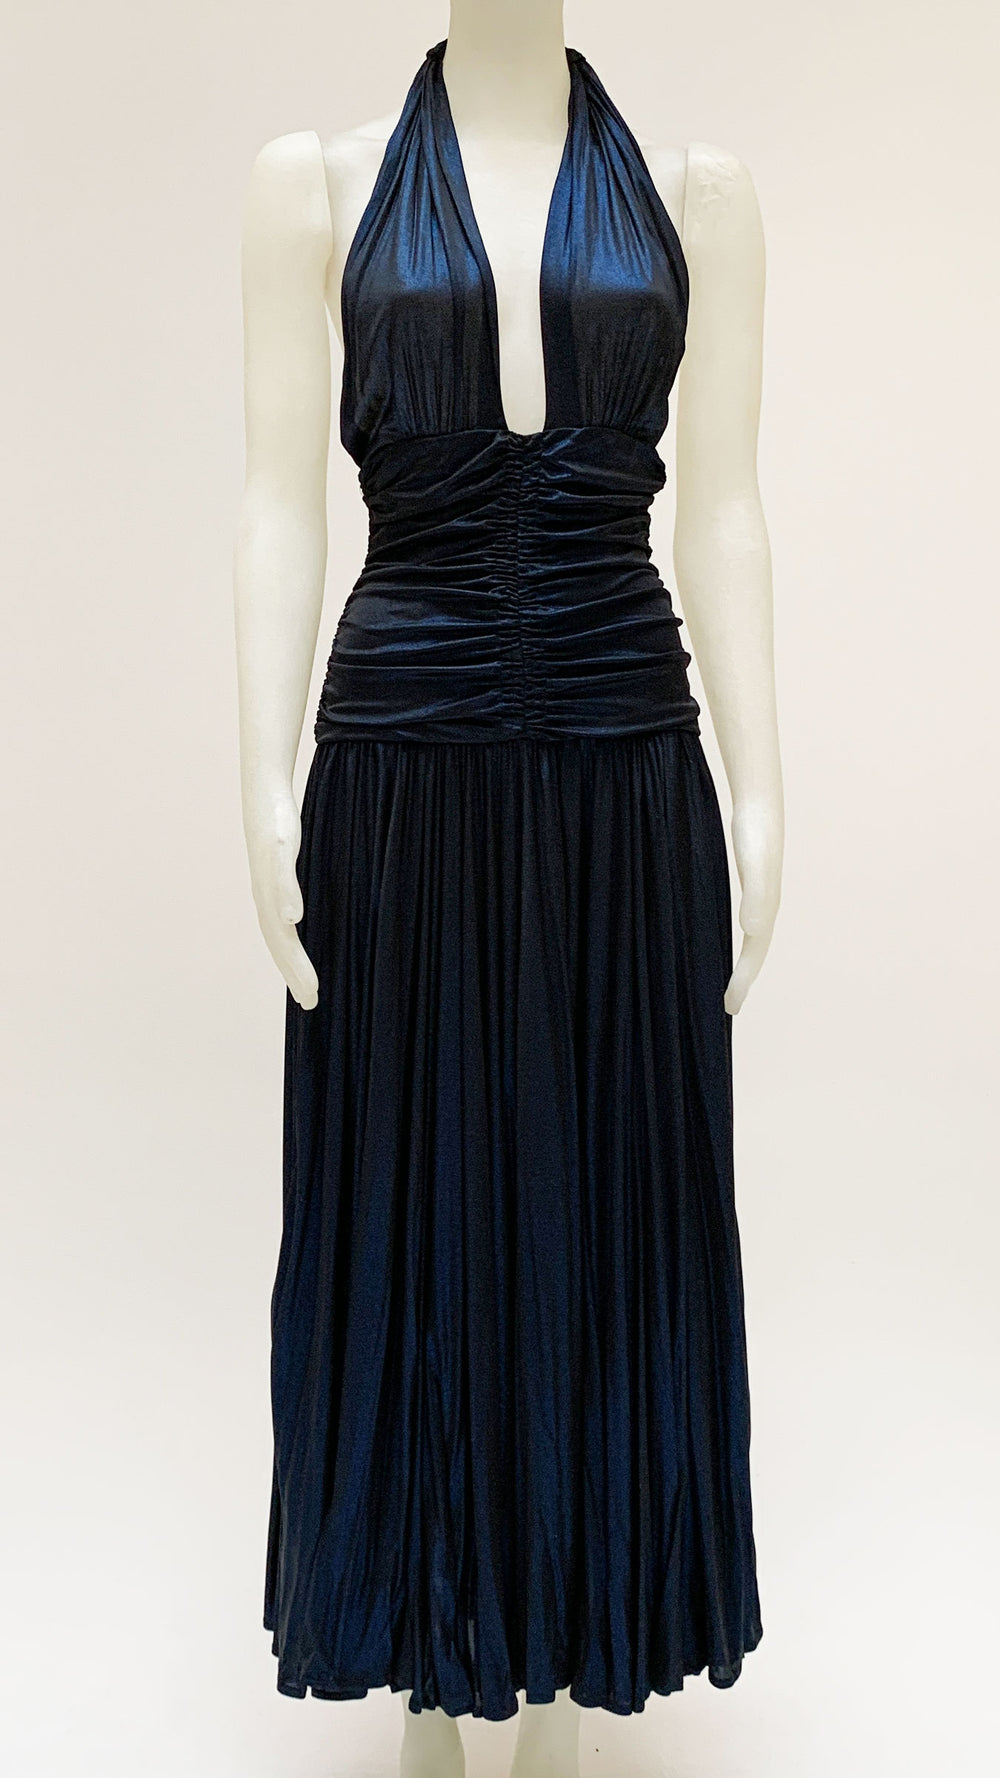 HALTER BILL PLEATED GOWN - 1